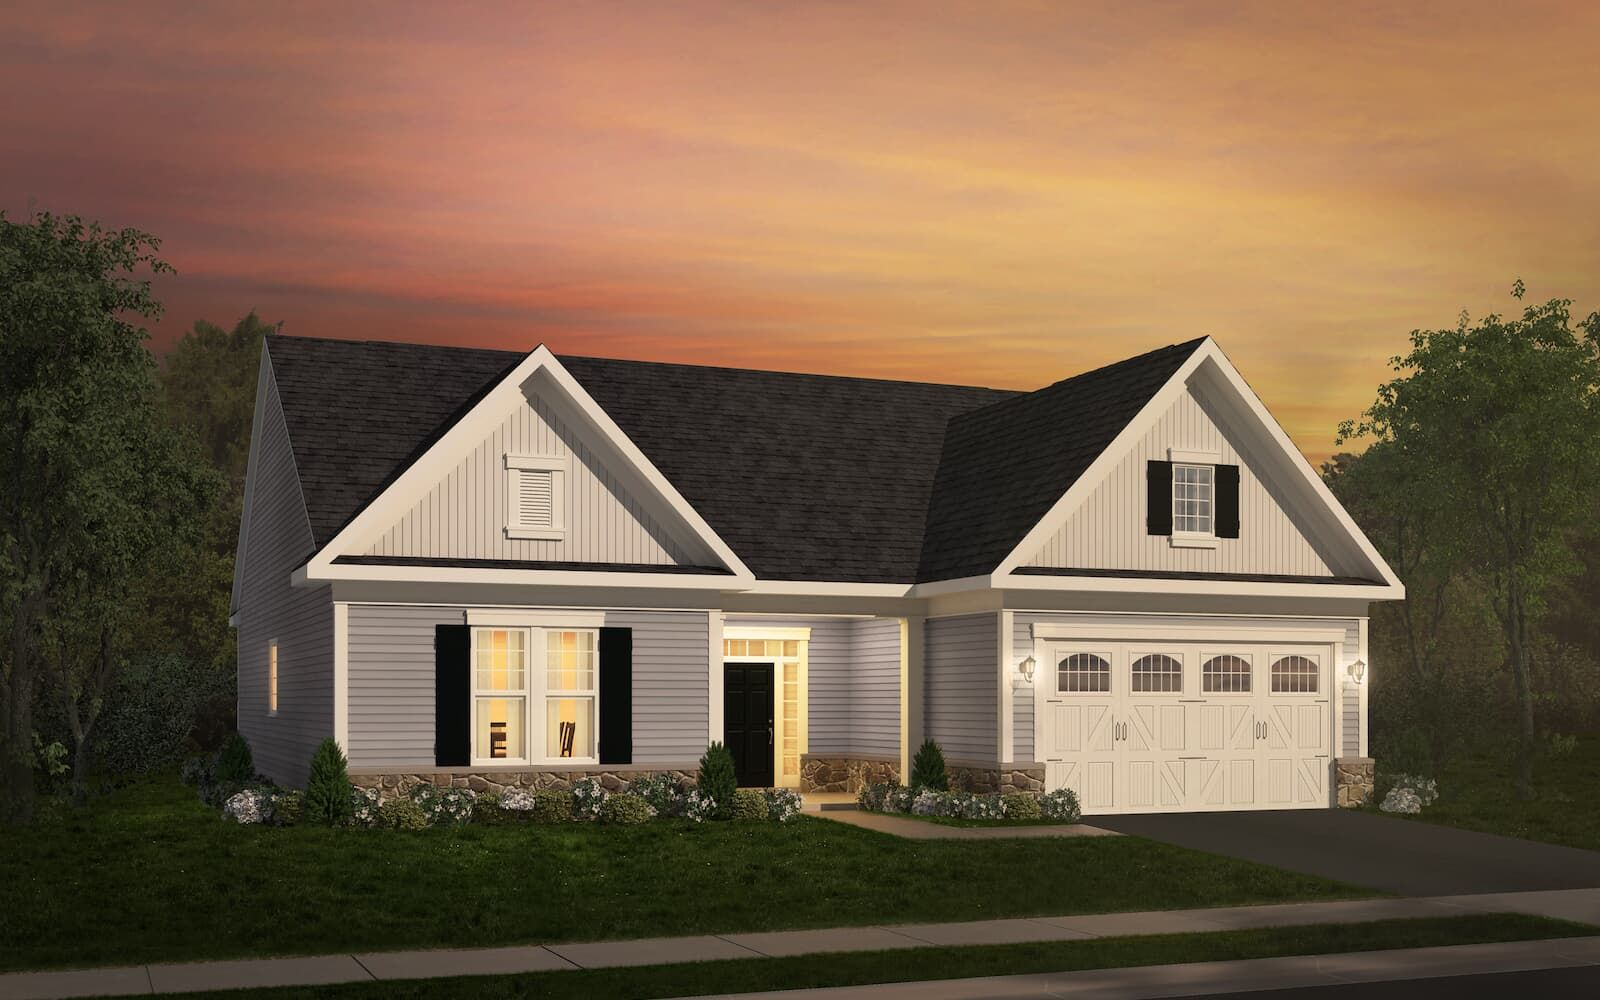 Exterior:Elevation 1 of the Savoy a home design at Easton Village by Brookfield Residential